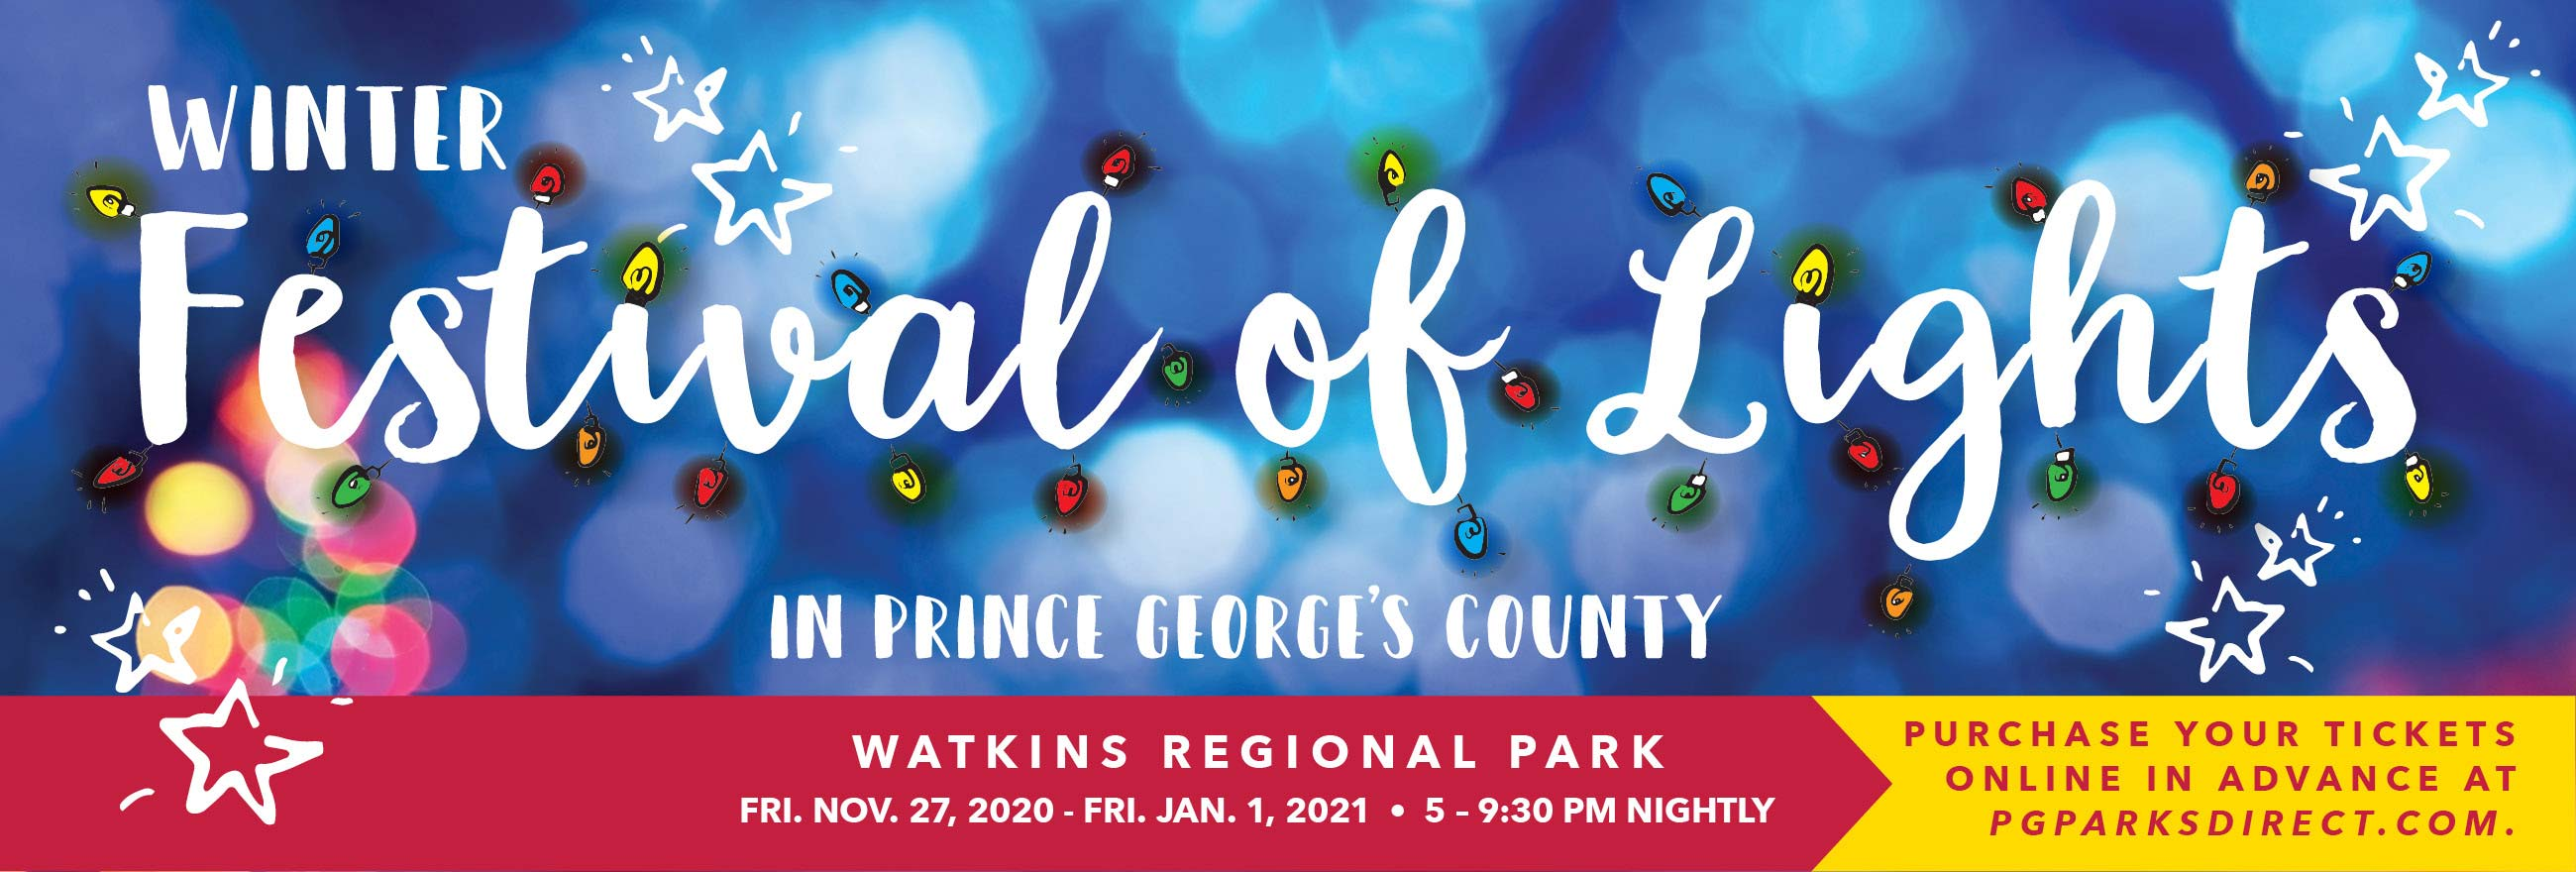 festival of lights at watkins regional park